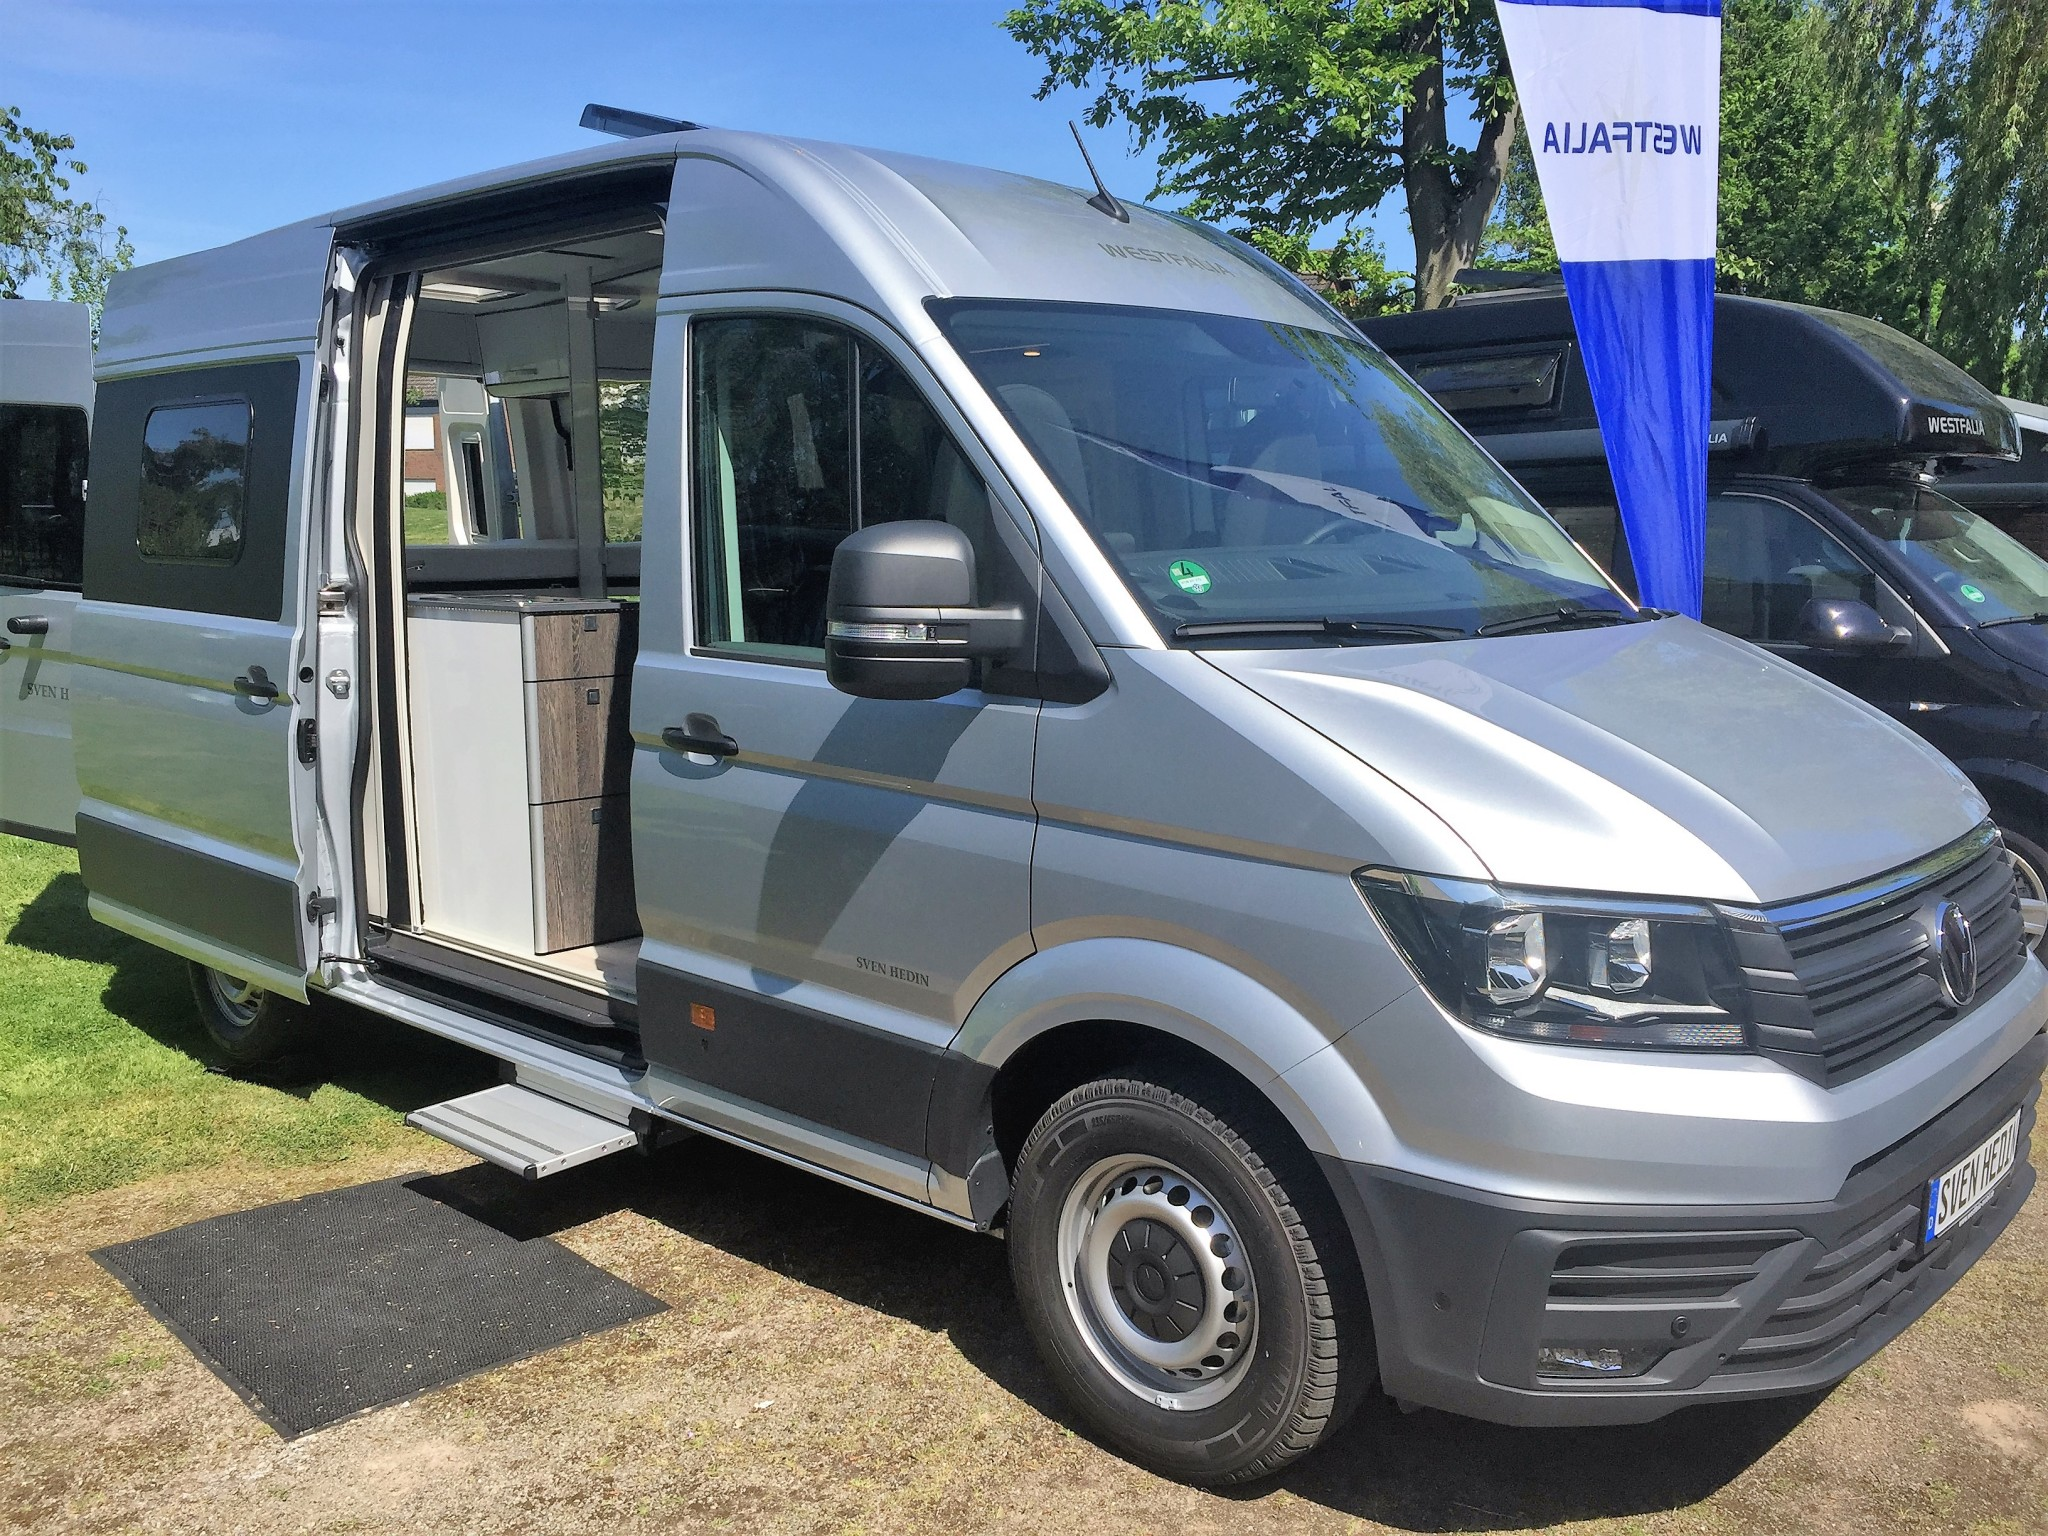 model   westfalia sven hedin motorhome vw crafter dsg automatic expected uk debut